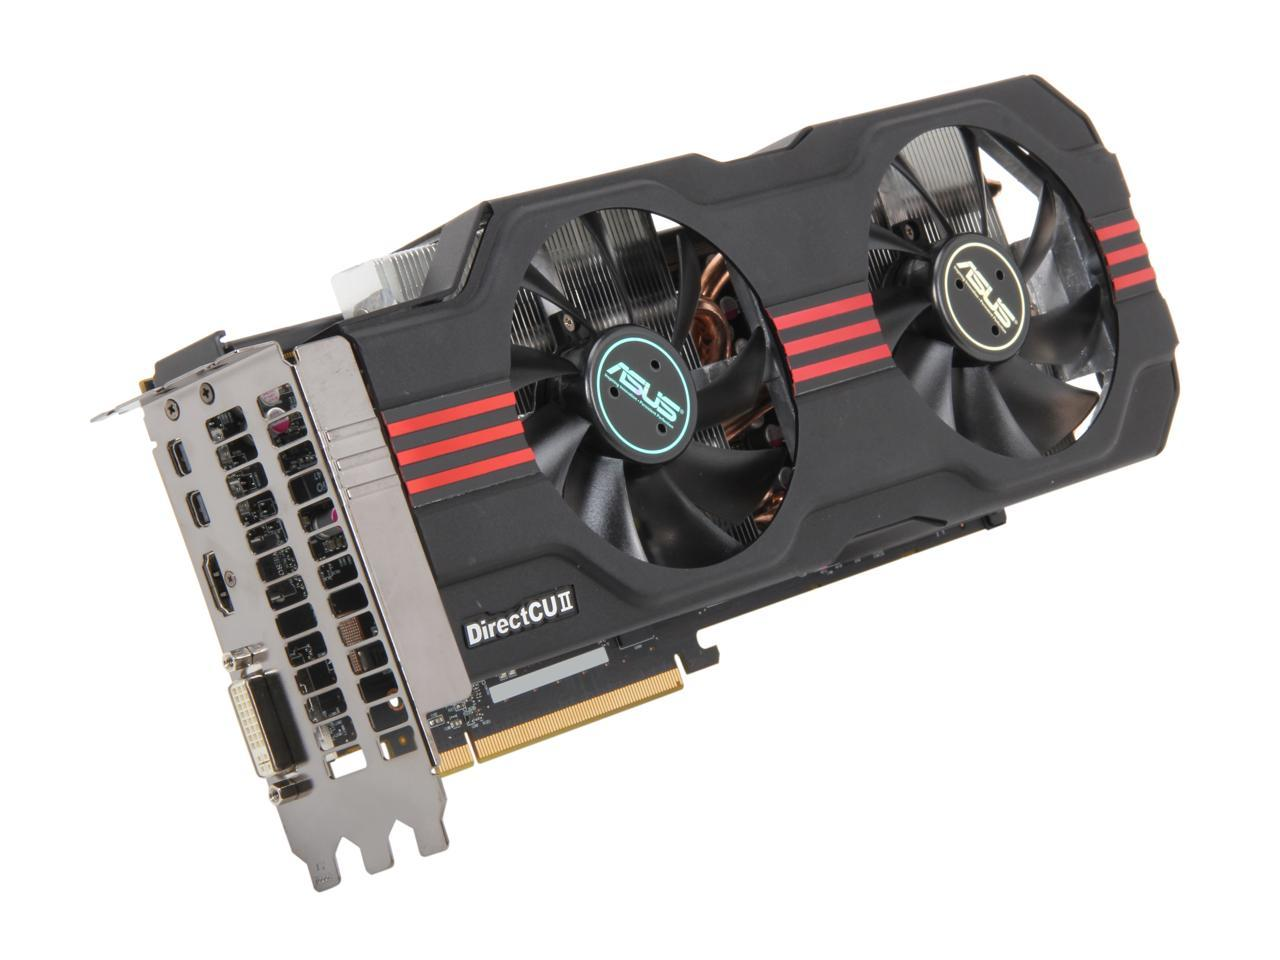 Corona diaries – day 40ish – thinking about updating a graphics card